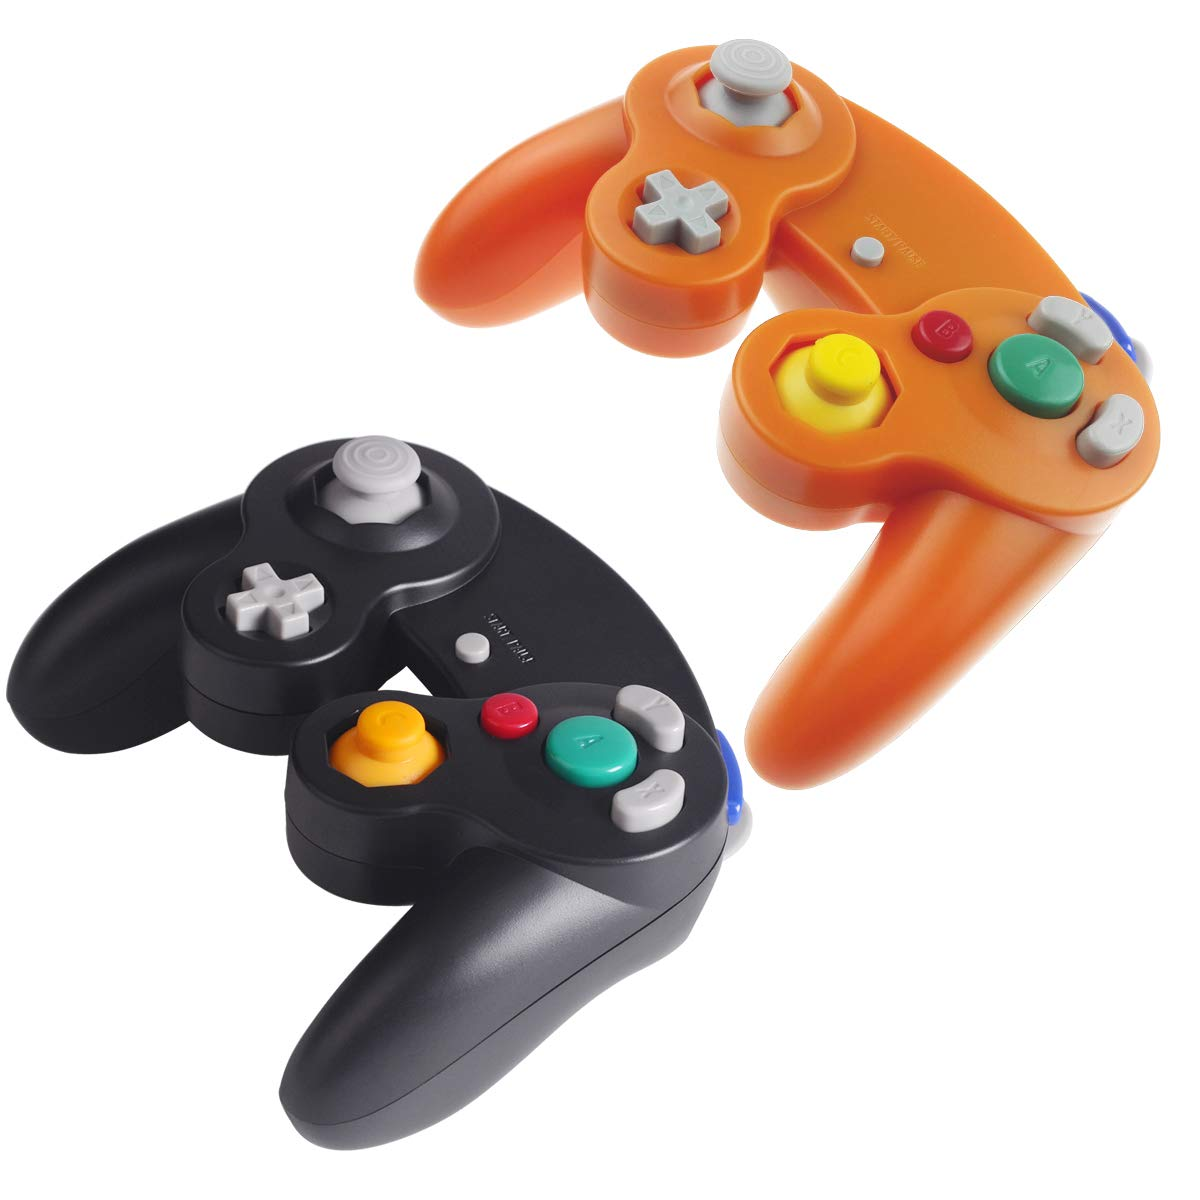 TechKen Wii Controller Gamecube Wii U Replacement Wired Classic Controller Gamepad Compatible with Nintendo Gamecube Wii